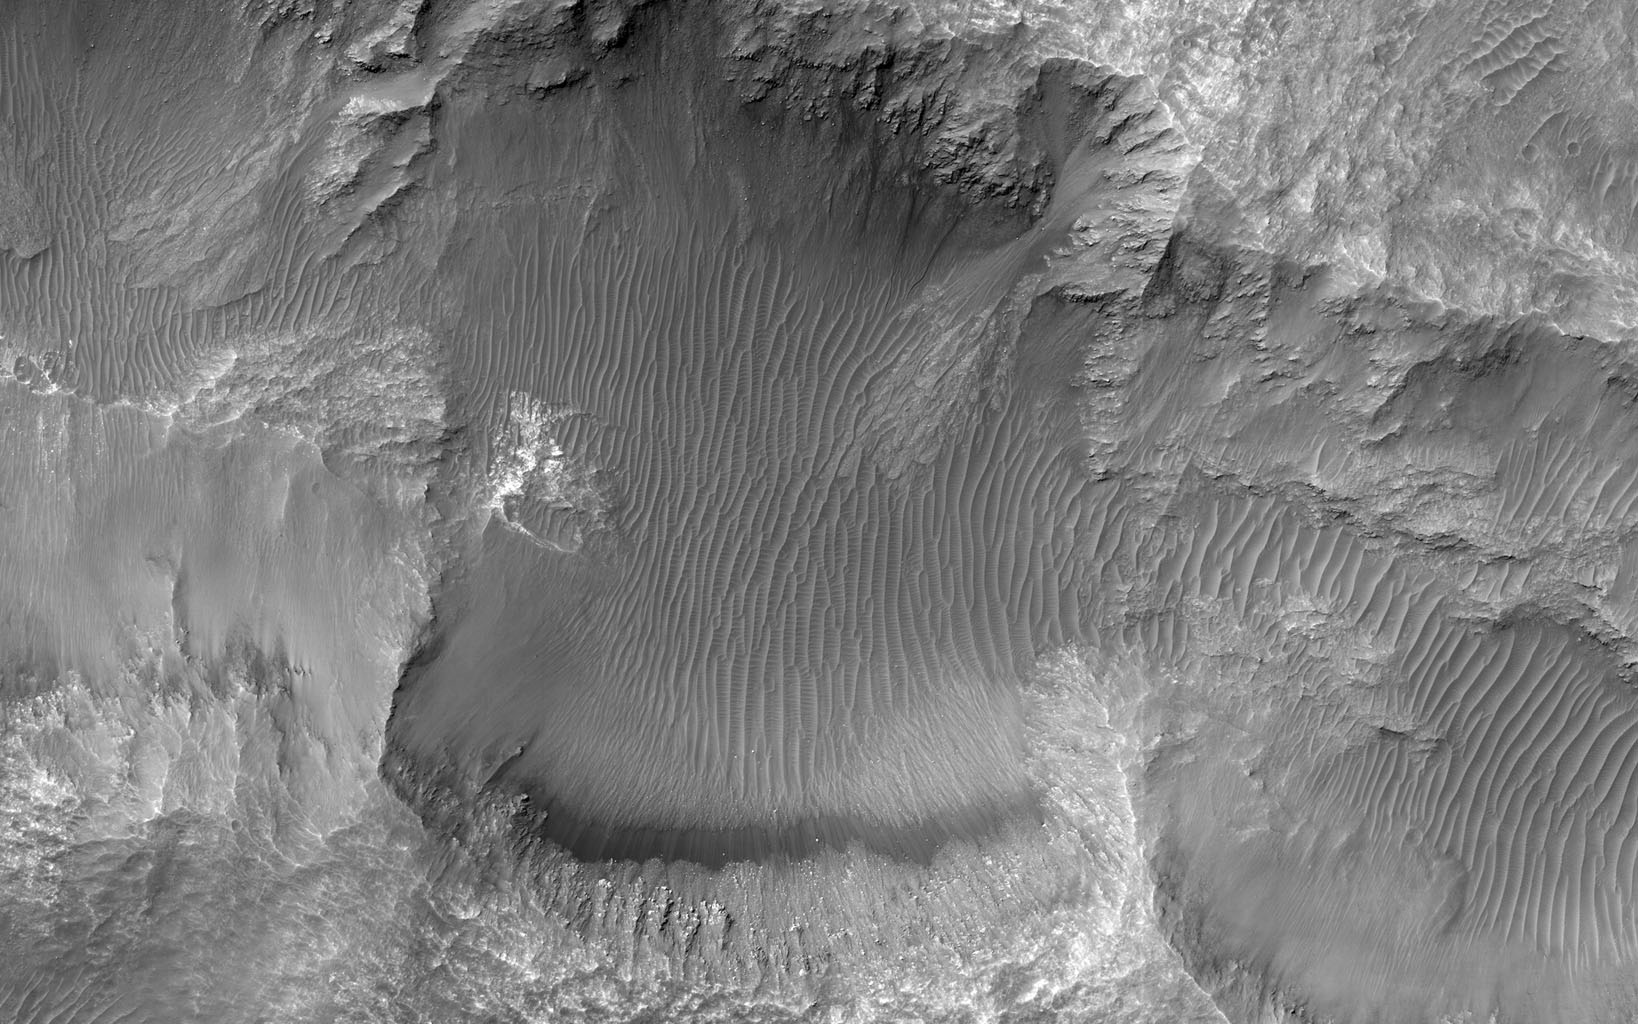 This image from NASA's Mars Reconnaissance Orbiter shows an elongated depression from three merged craters.